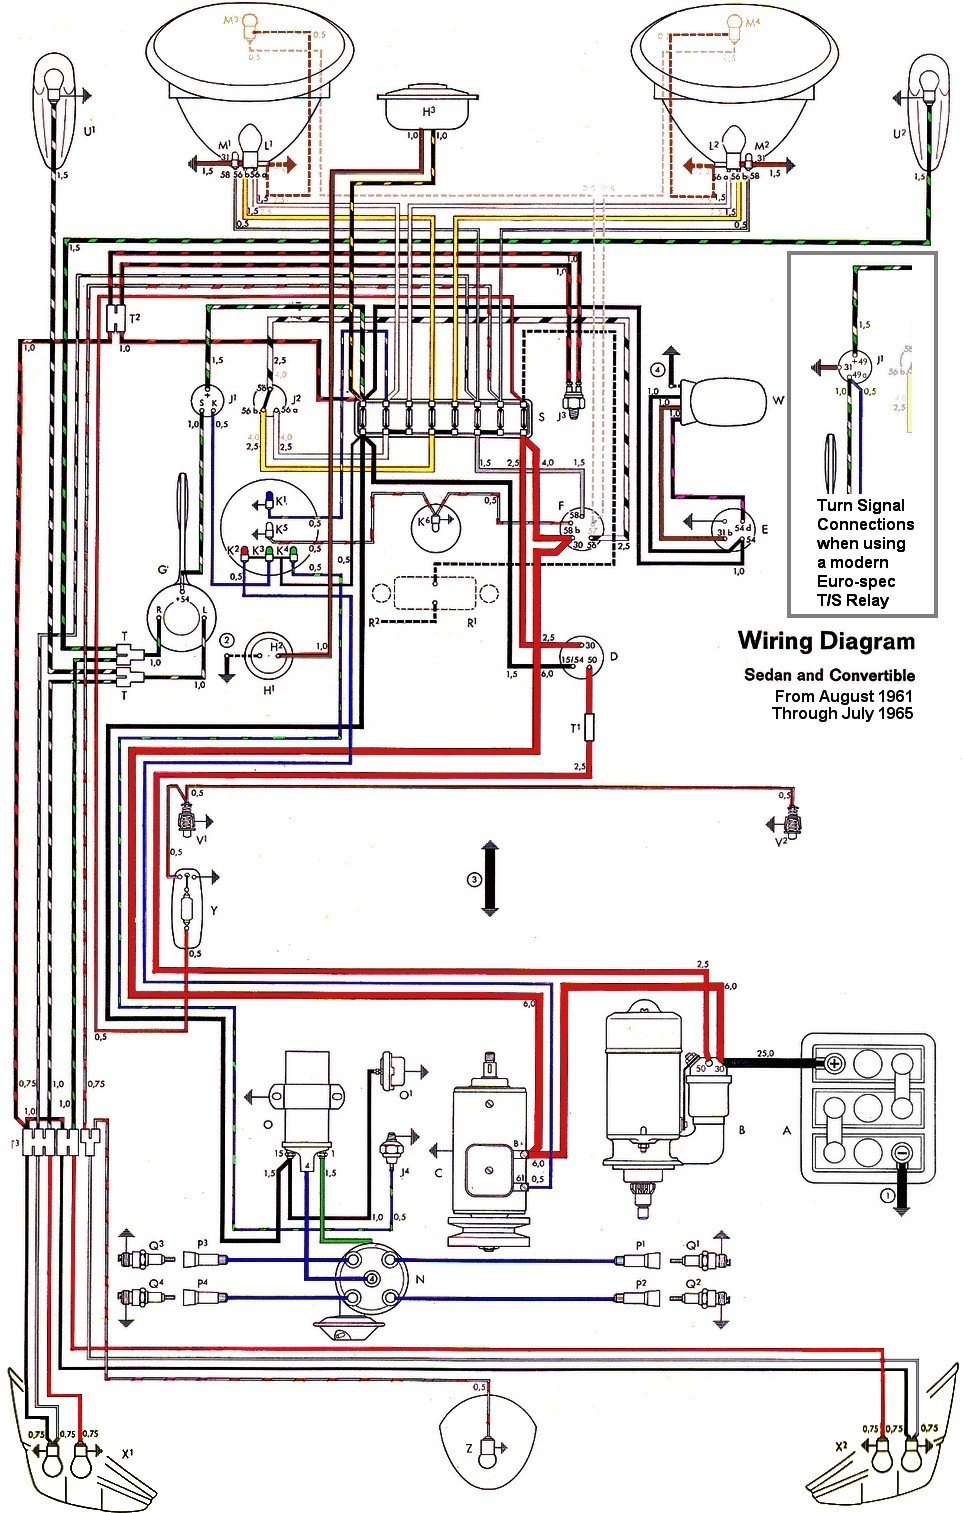 bug_62 65withinset wiring diagram vw beetle sedan and convertible 1961 1965 vw dune buggy wiring schematic at nearapp.co